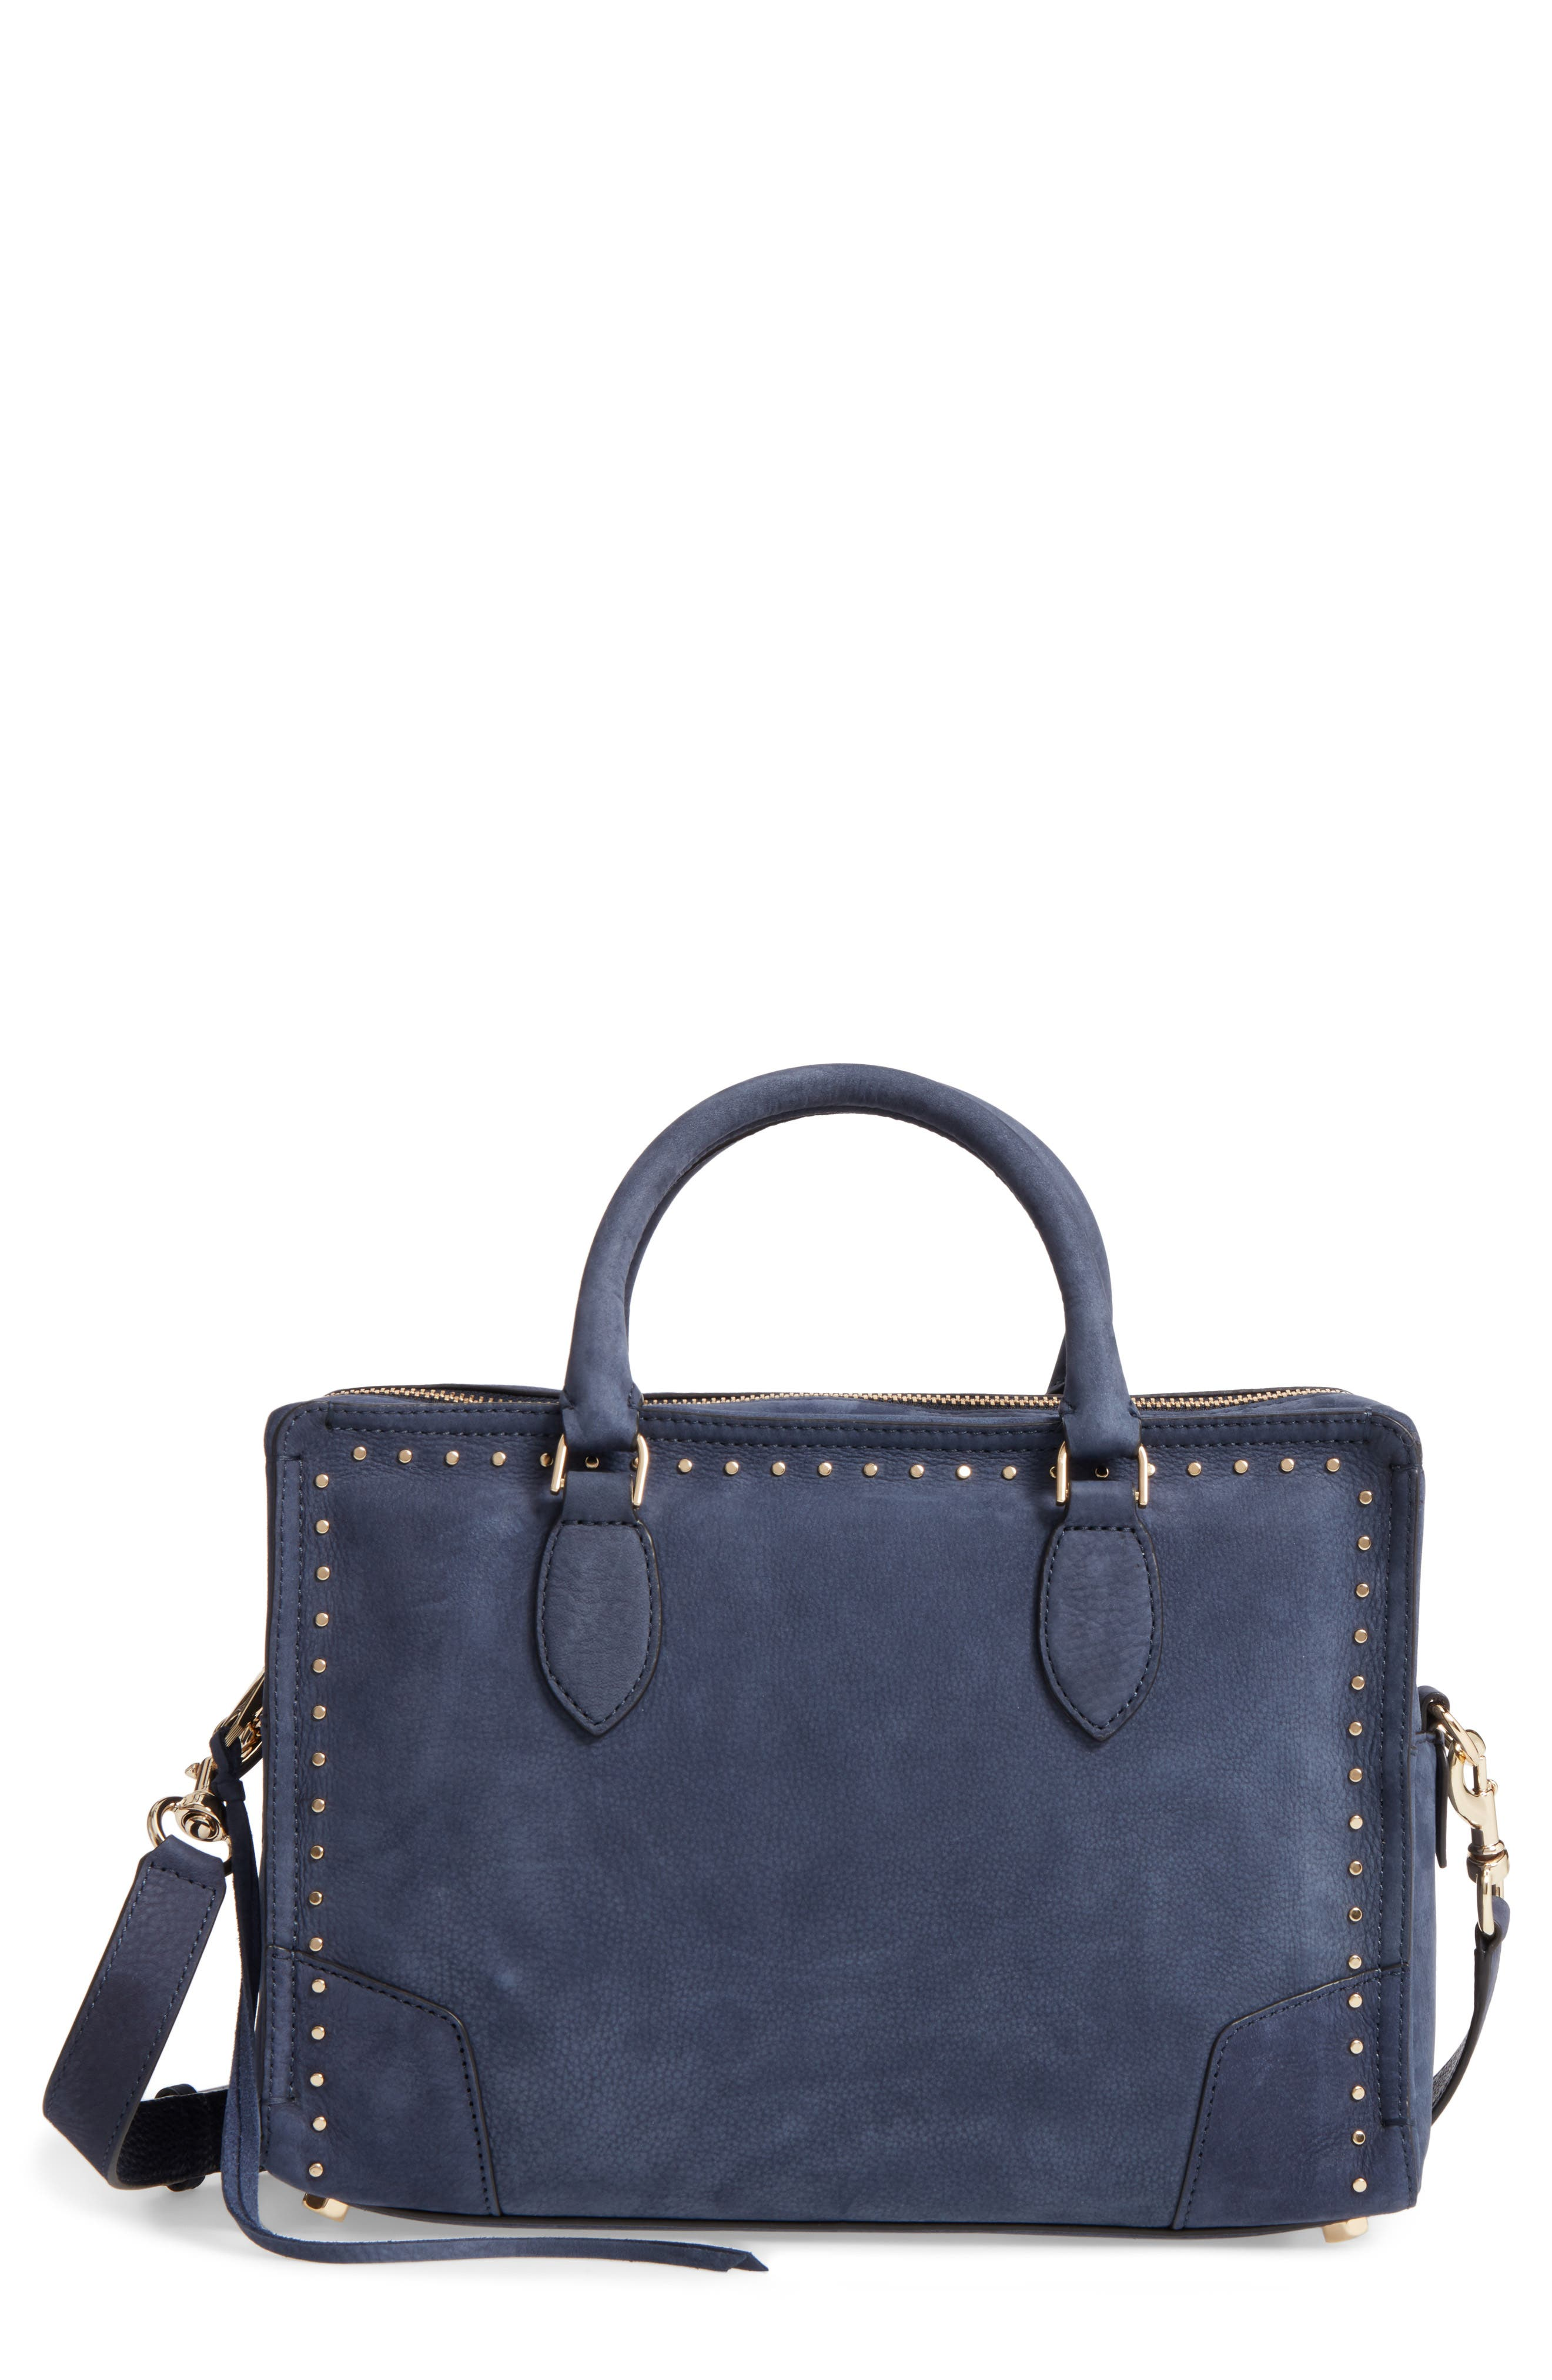 REBECCA MINKOFF Moonwalking Leather Satchel